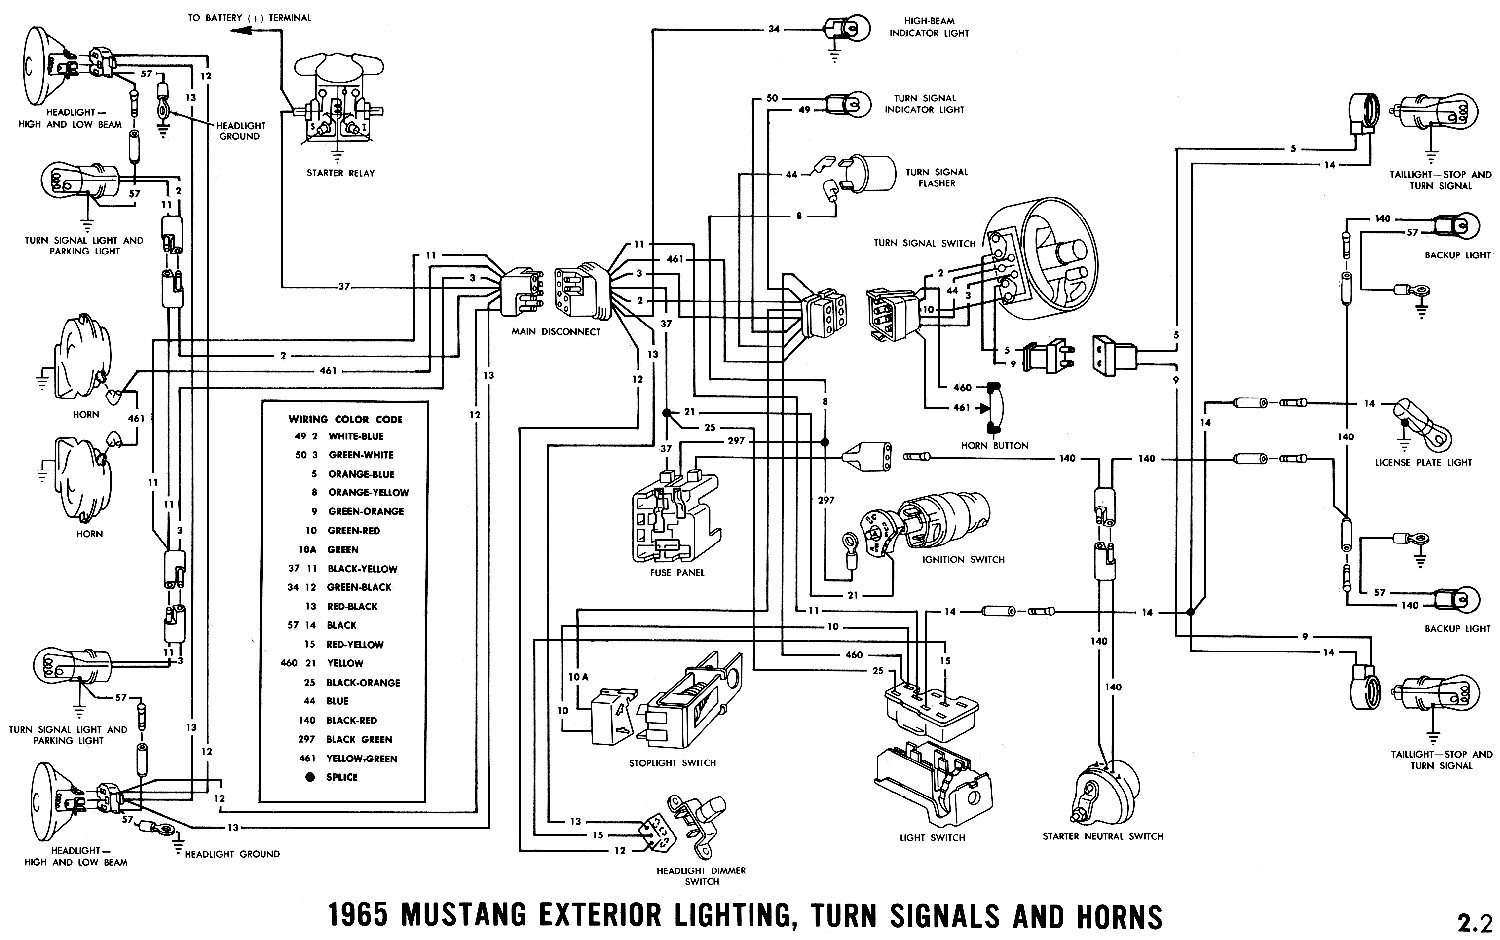 1971 Mustang Fuse Box Diagram Simple Wiring 95 Panel Land 1972